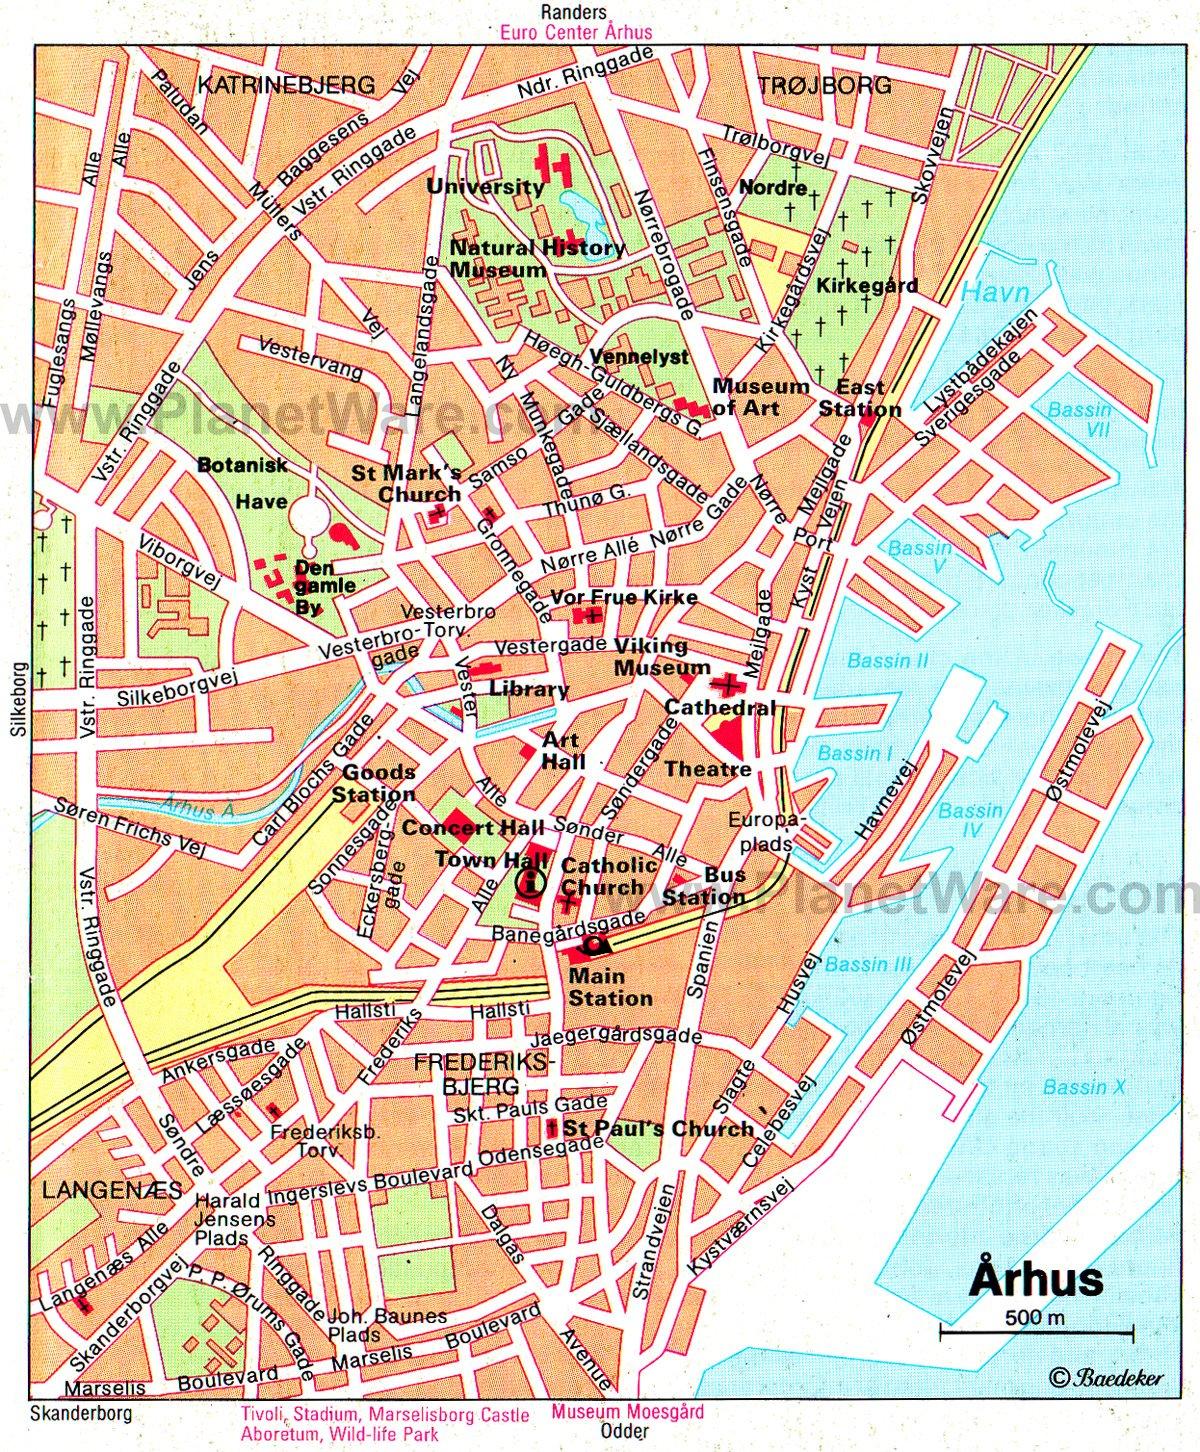 10 Top Tourist Attractions in Aarhus and Easy Day Trips – Copenhagen Tourist Map